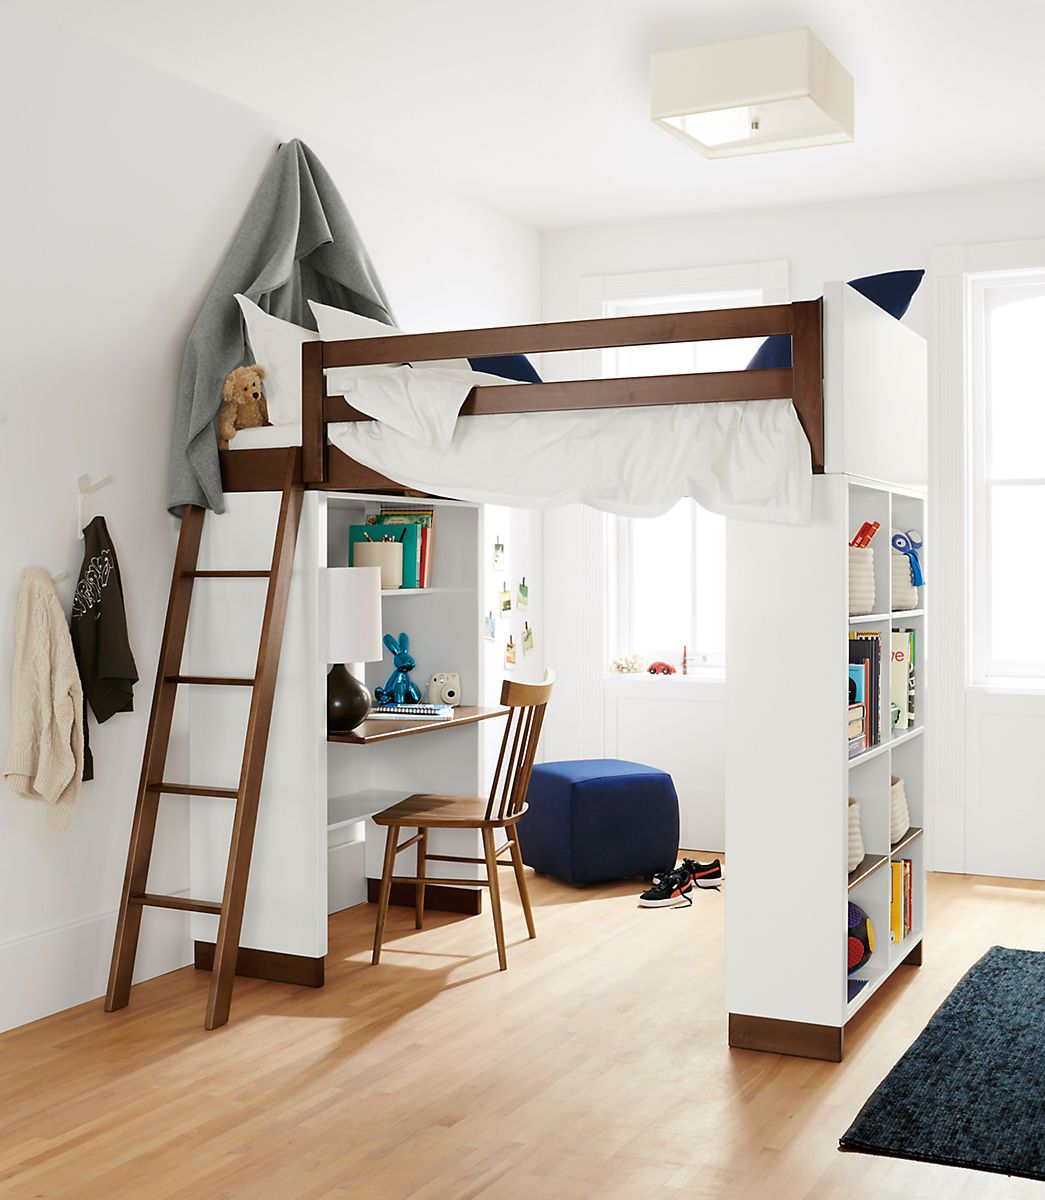 Moda Loft Beds with Desk and Bookcase Options  Conaghers new room  Bunk bed with desk Kid